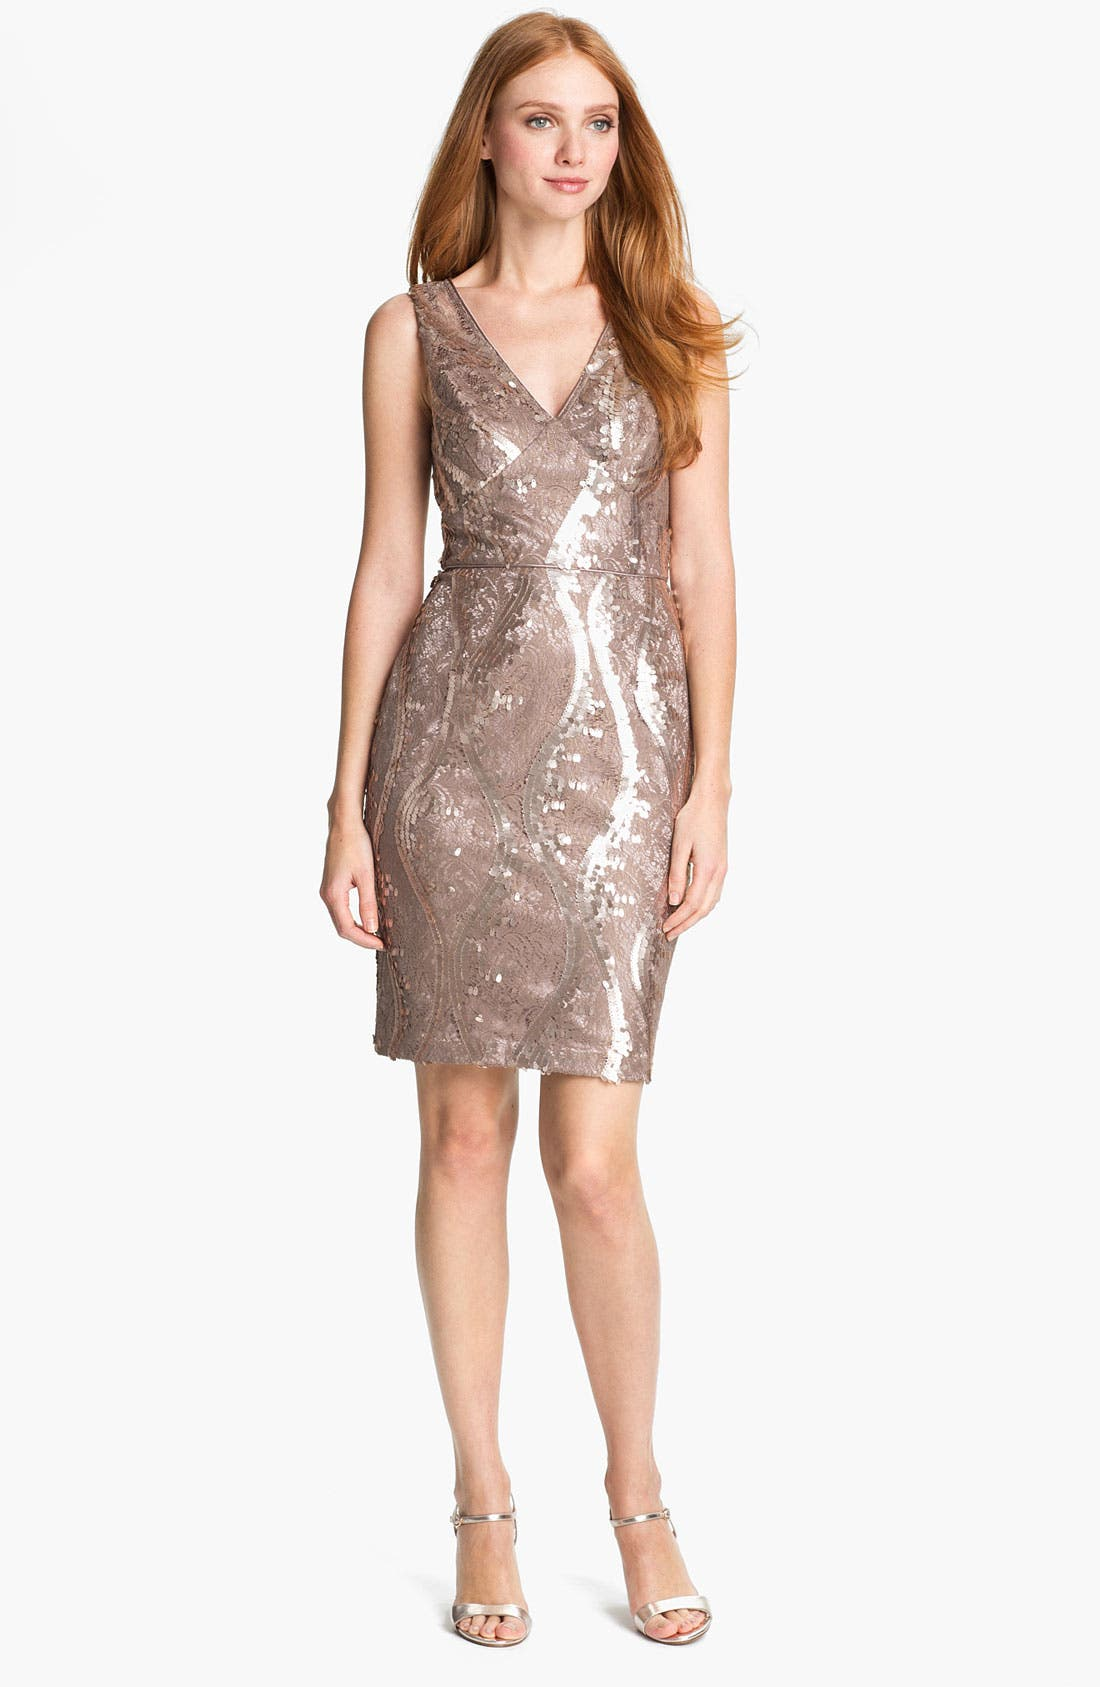 Main Image - Adrianna Papell Embellished Lace Cocktail Dress (Regular & Petite)